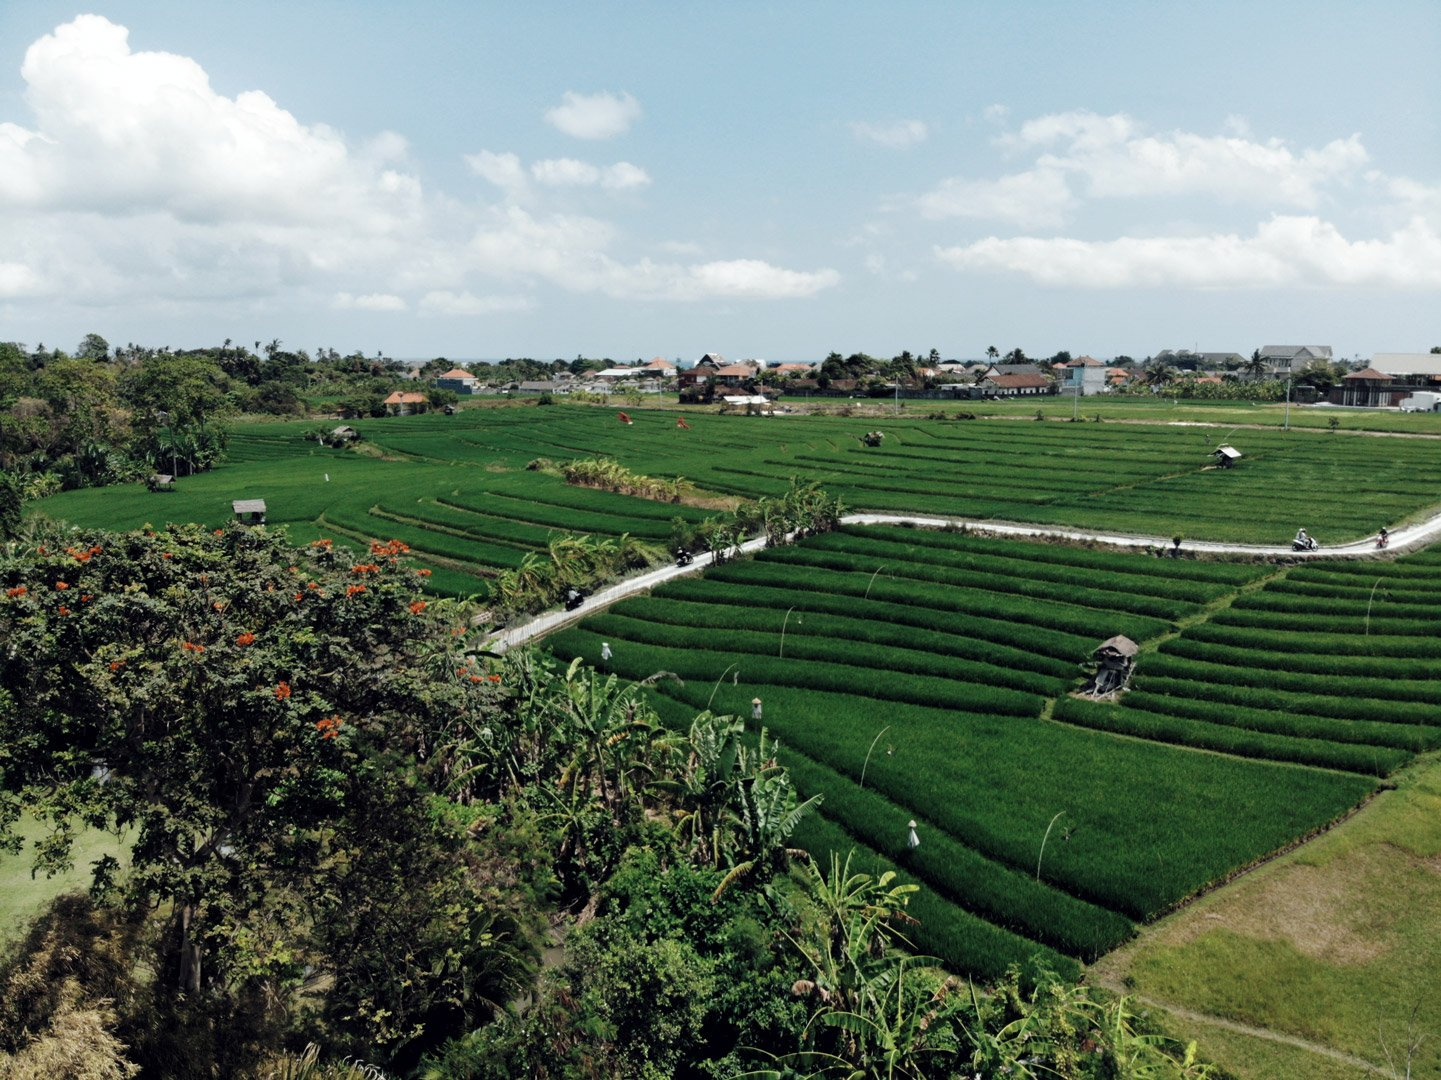 Aerial drone view of rice fields and greenery beyond Own Villa eco resort between Umalas and Canggu in southwest Bali